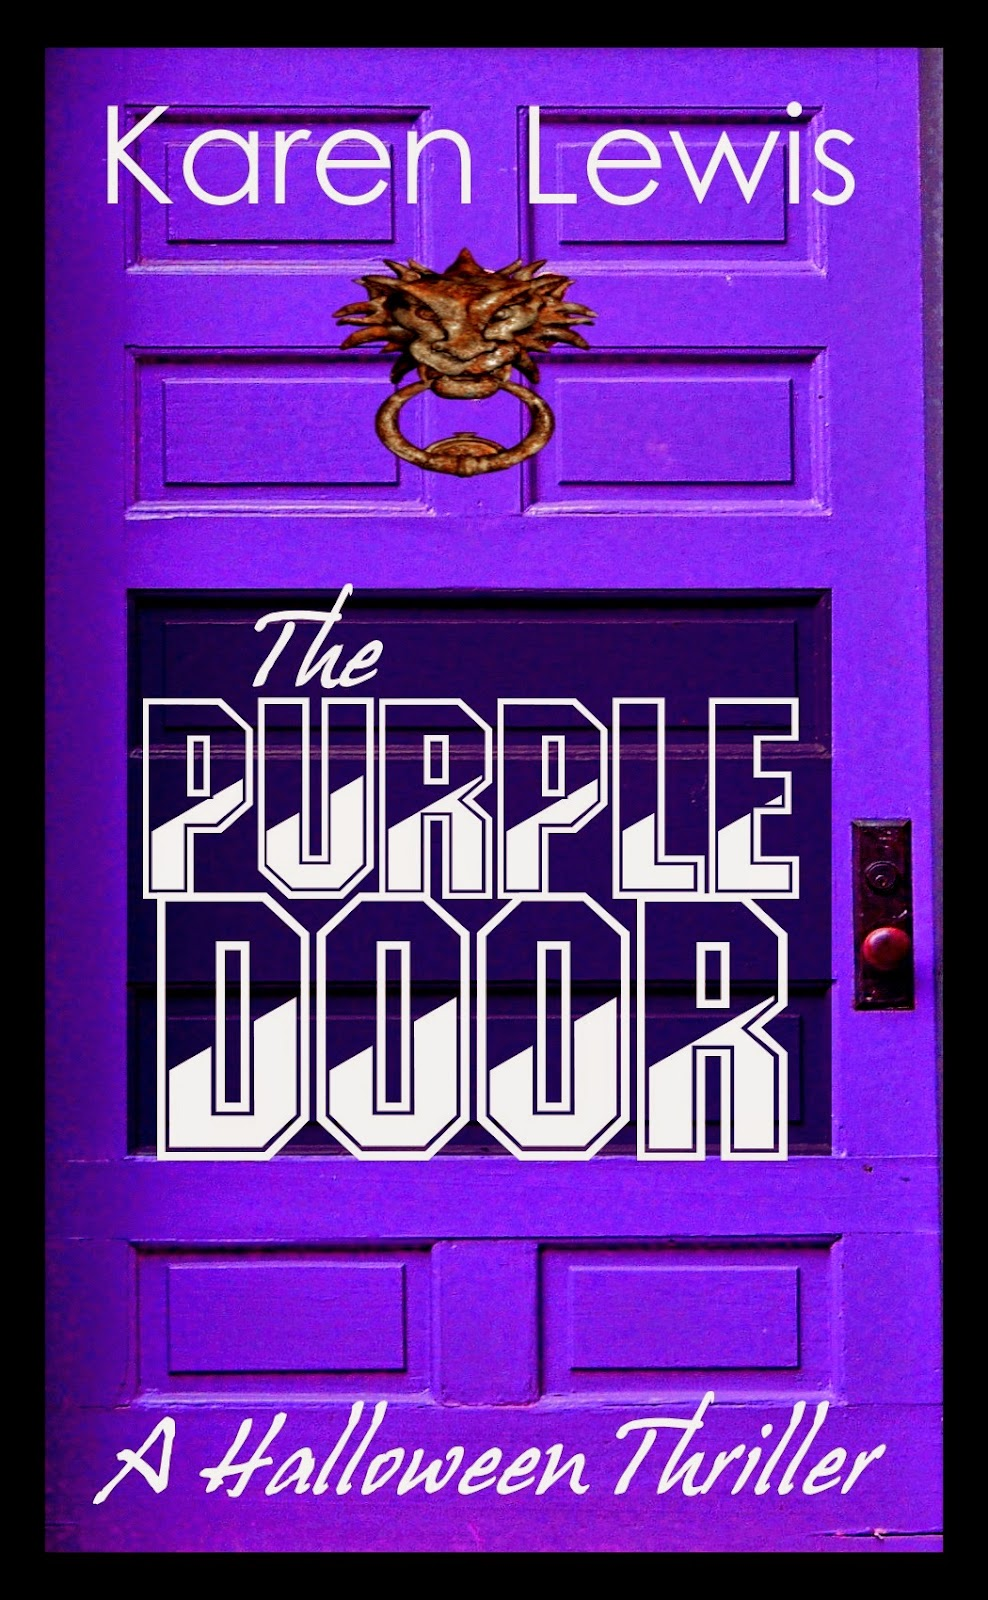 http://www.amazon.co.uk/Purple-Door-Halloween-Thriller-ebook/dp/B00NZE1H5U/ref=sr_1_1?s=books&ie=UTF8&qid=1412308533&sr=1-1&keywords=the+purple+door+lewis